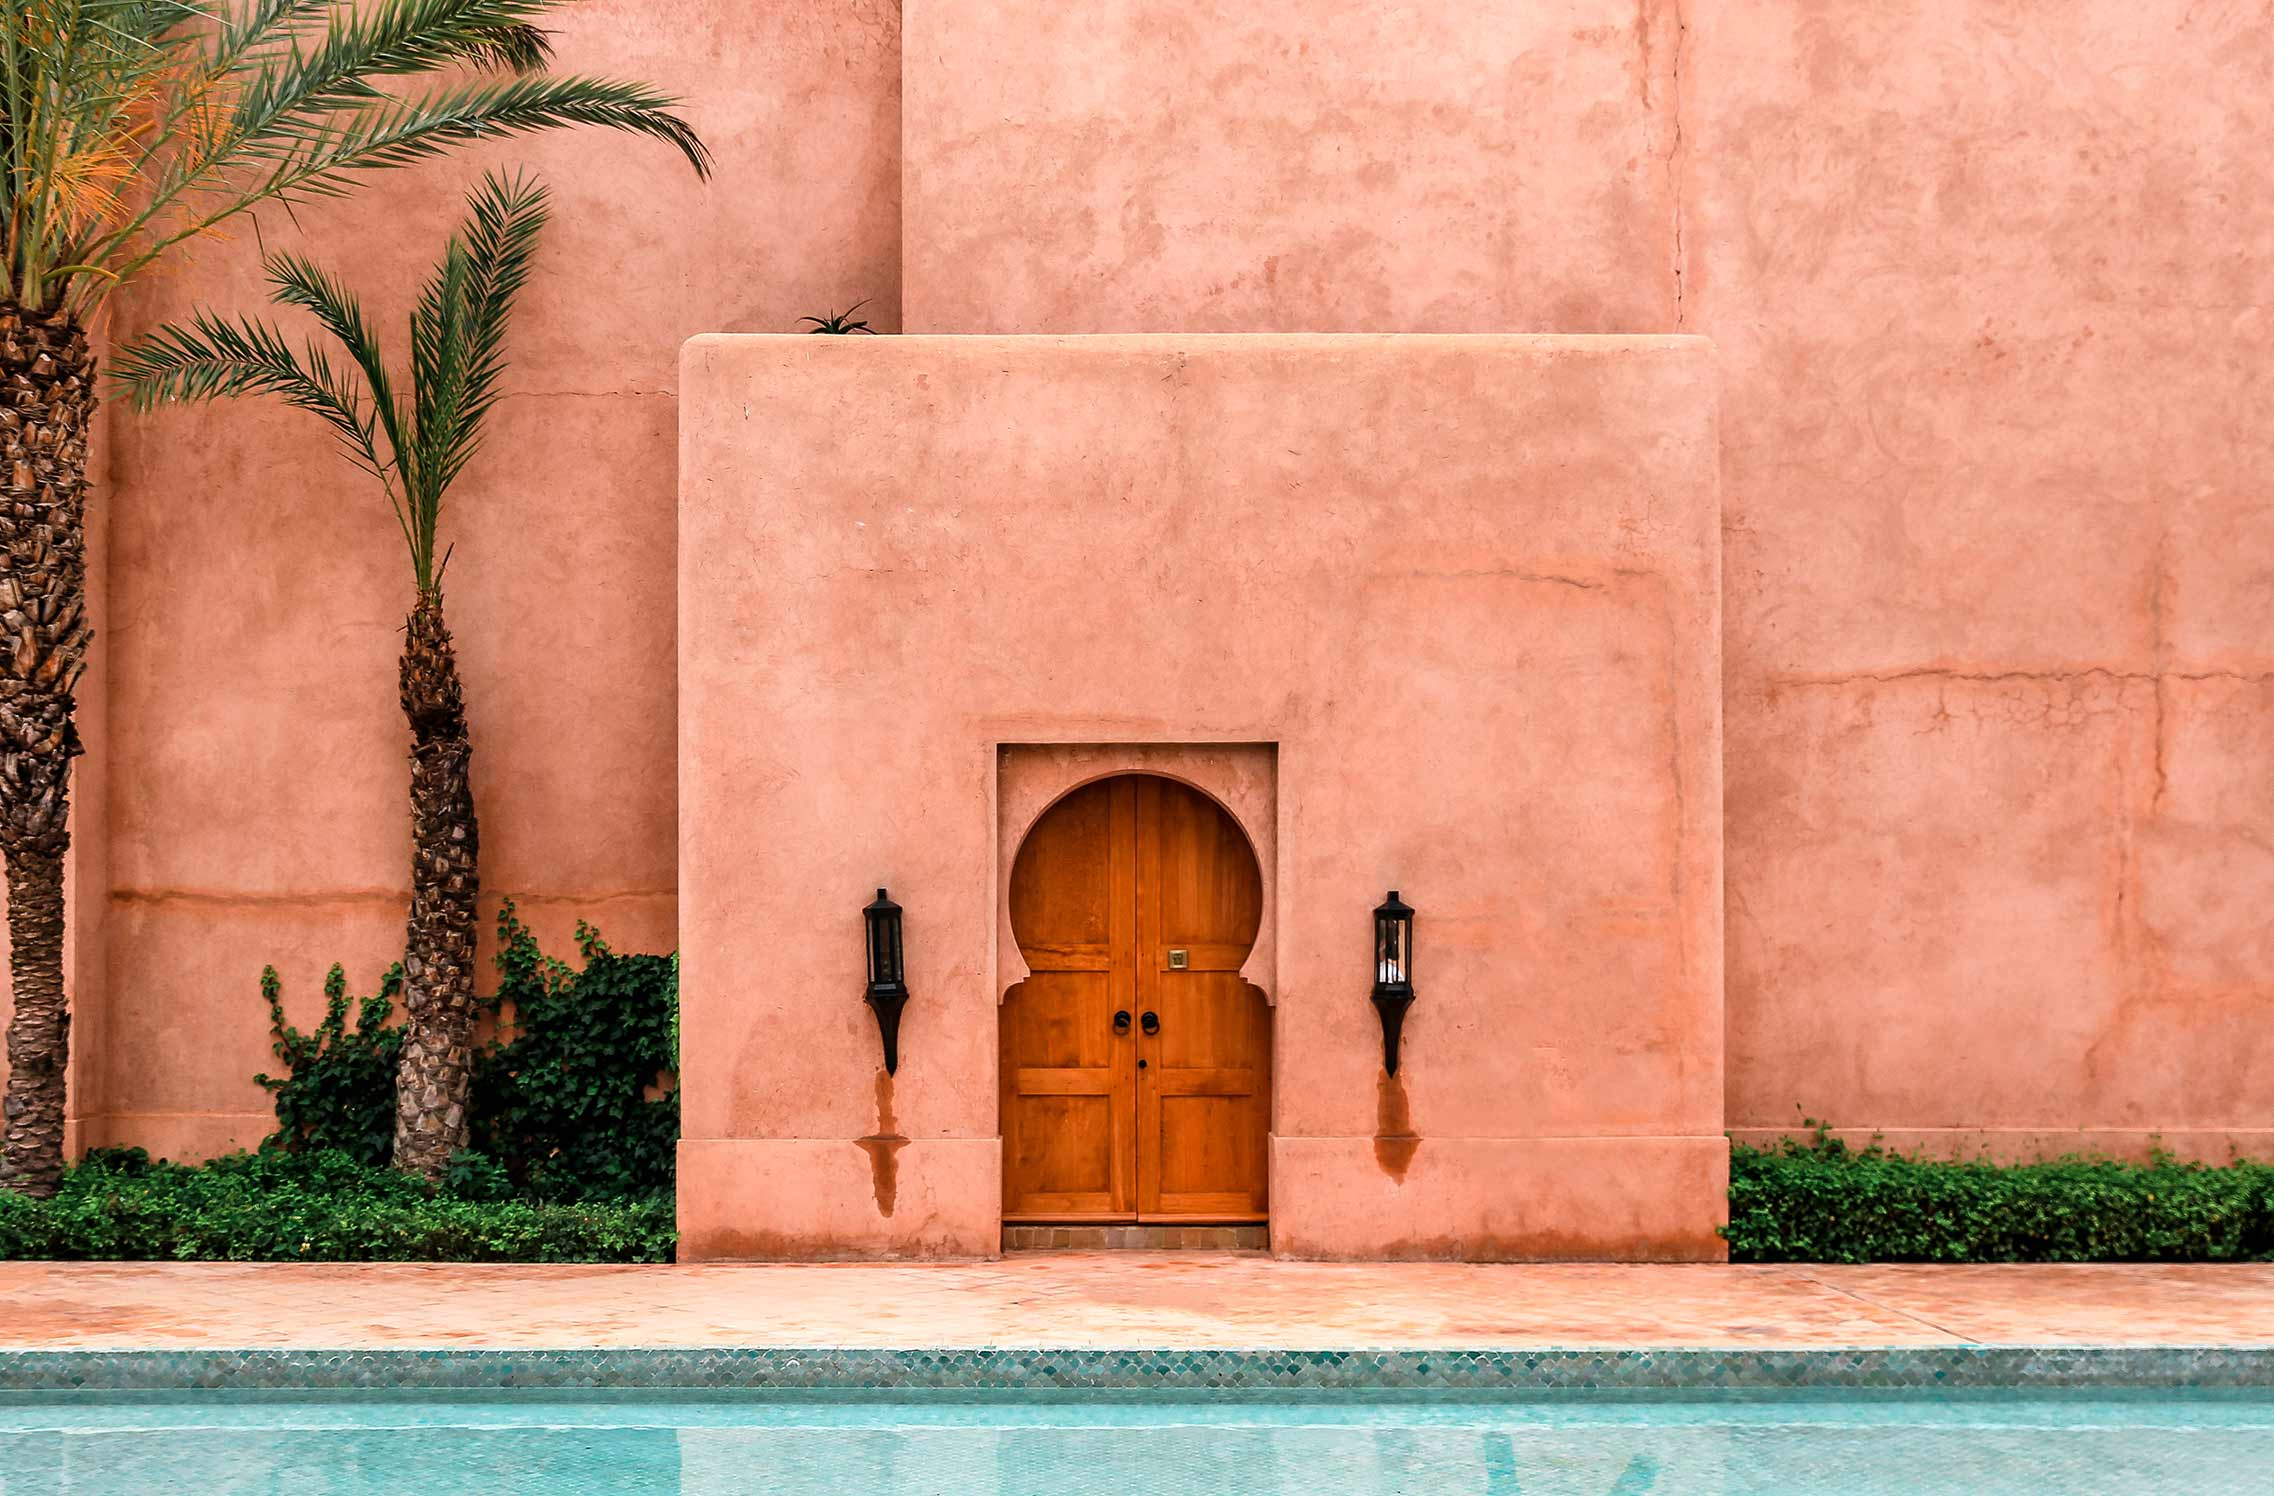 Red-walled building in Morocco overlooking a swimming pool